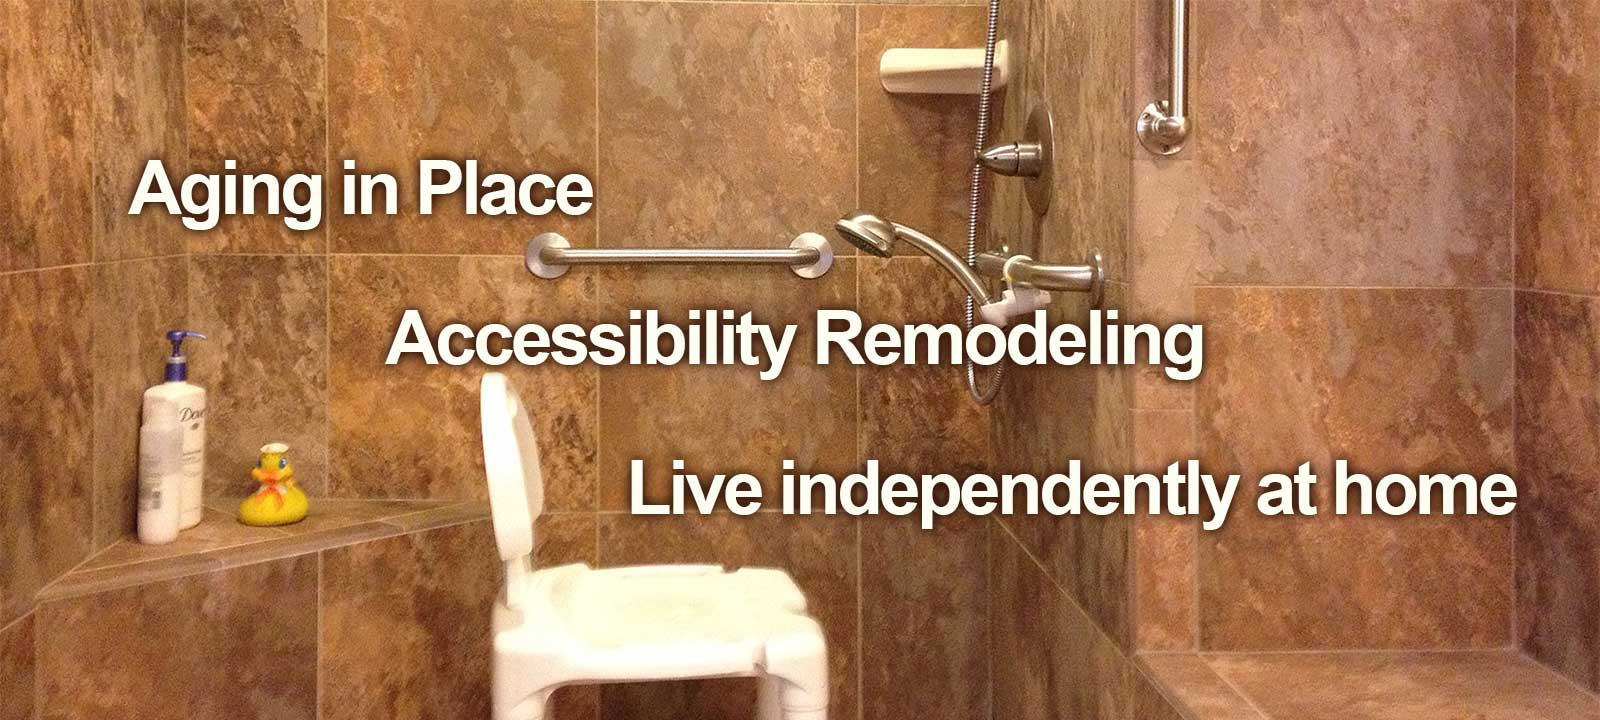 Live independently at home with aging in place accessibility remodeling